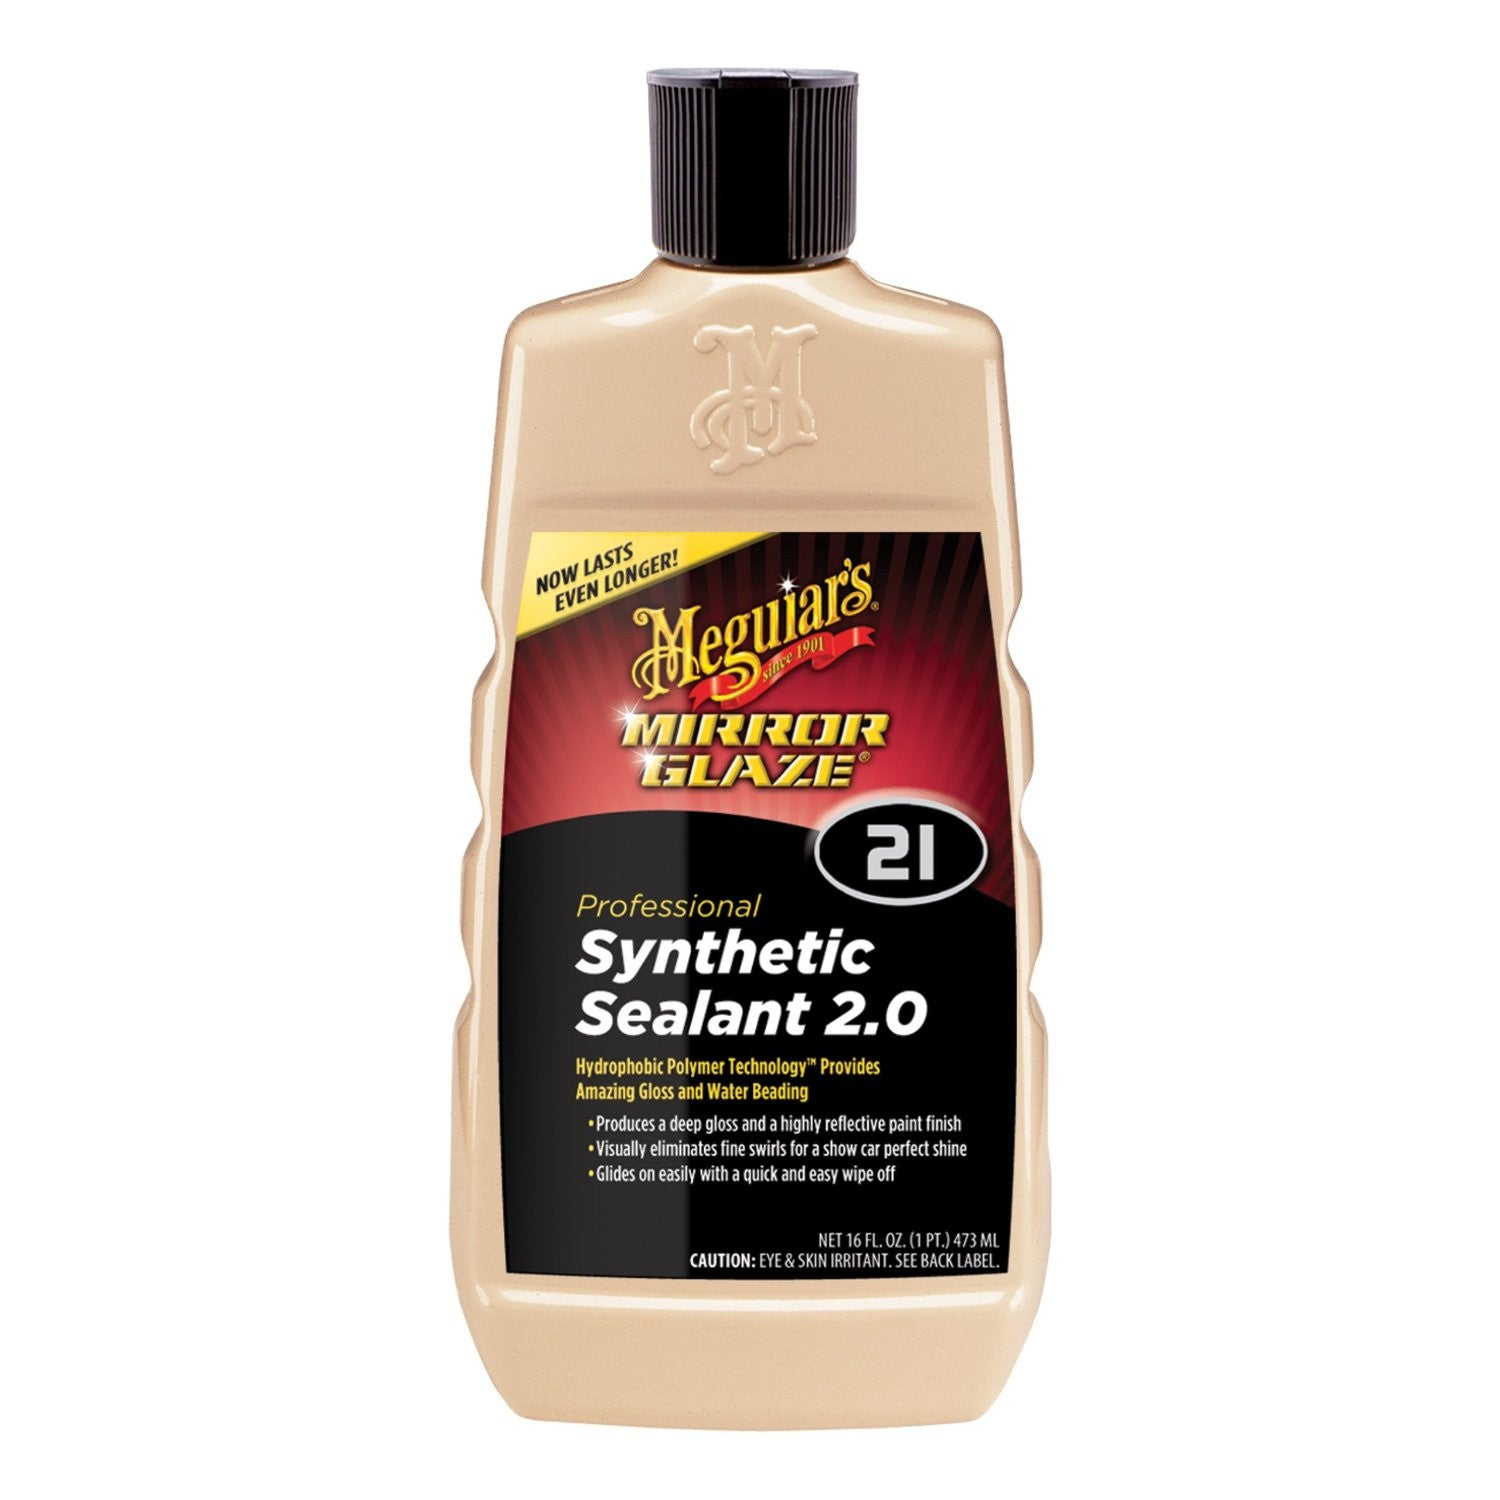 Meguiar's Mirror Glaze Synthetic Sealant 2.0